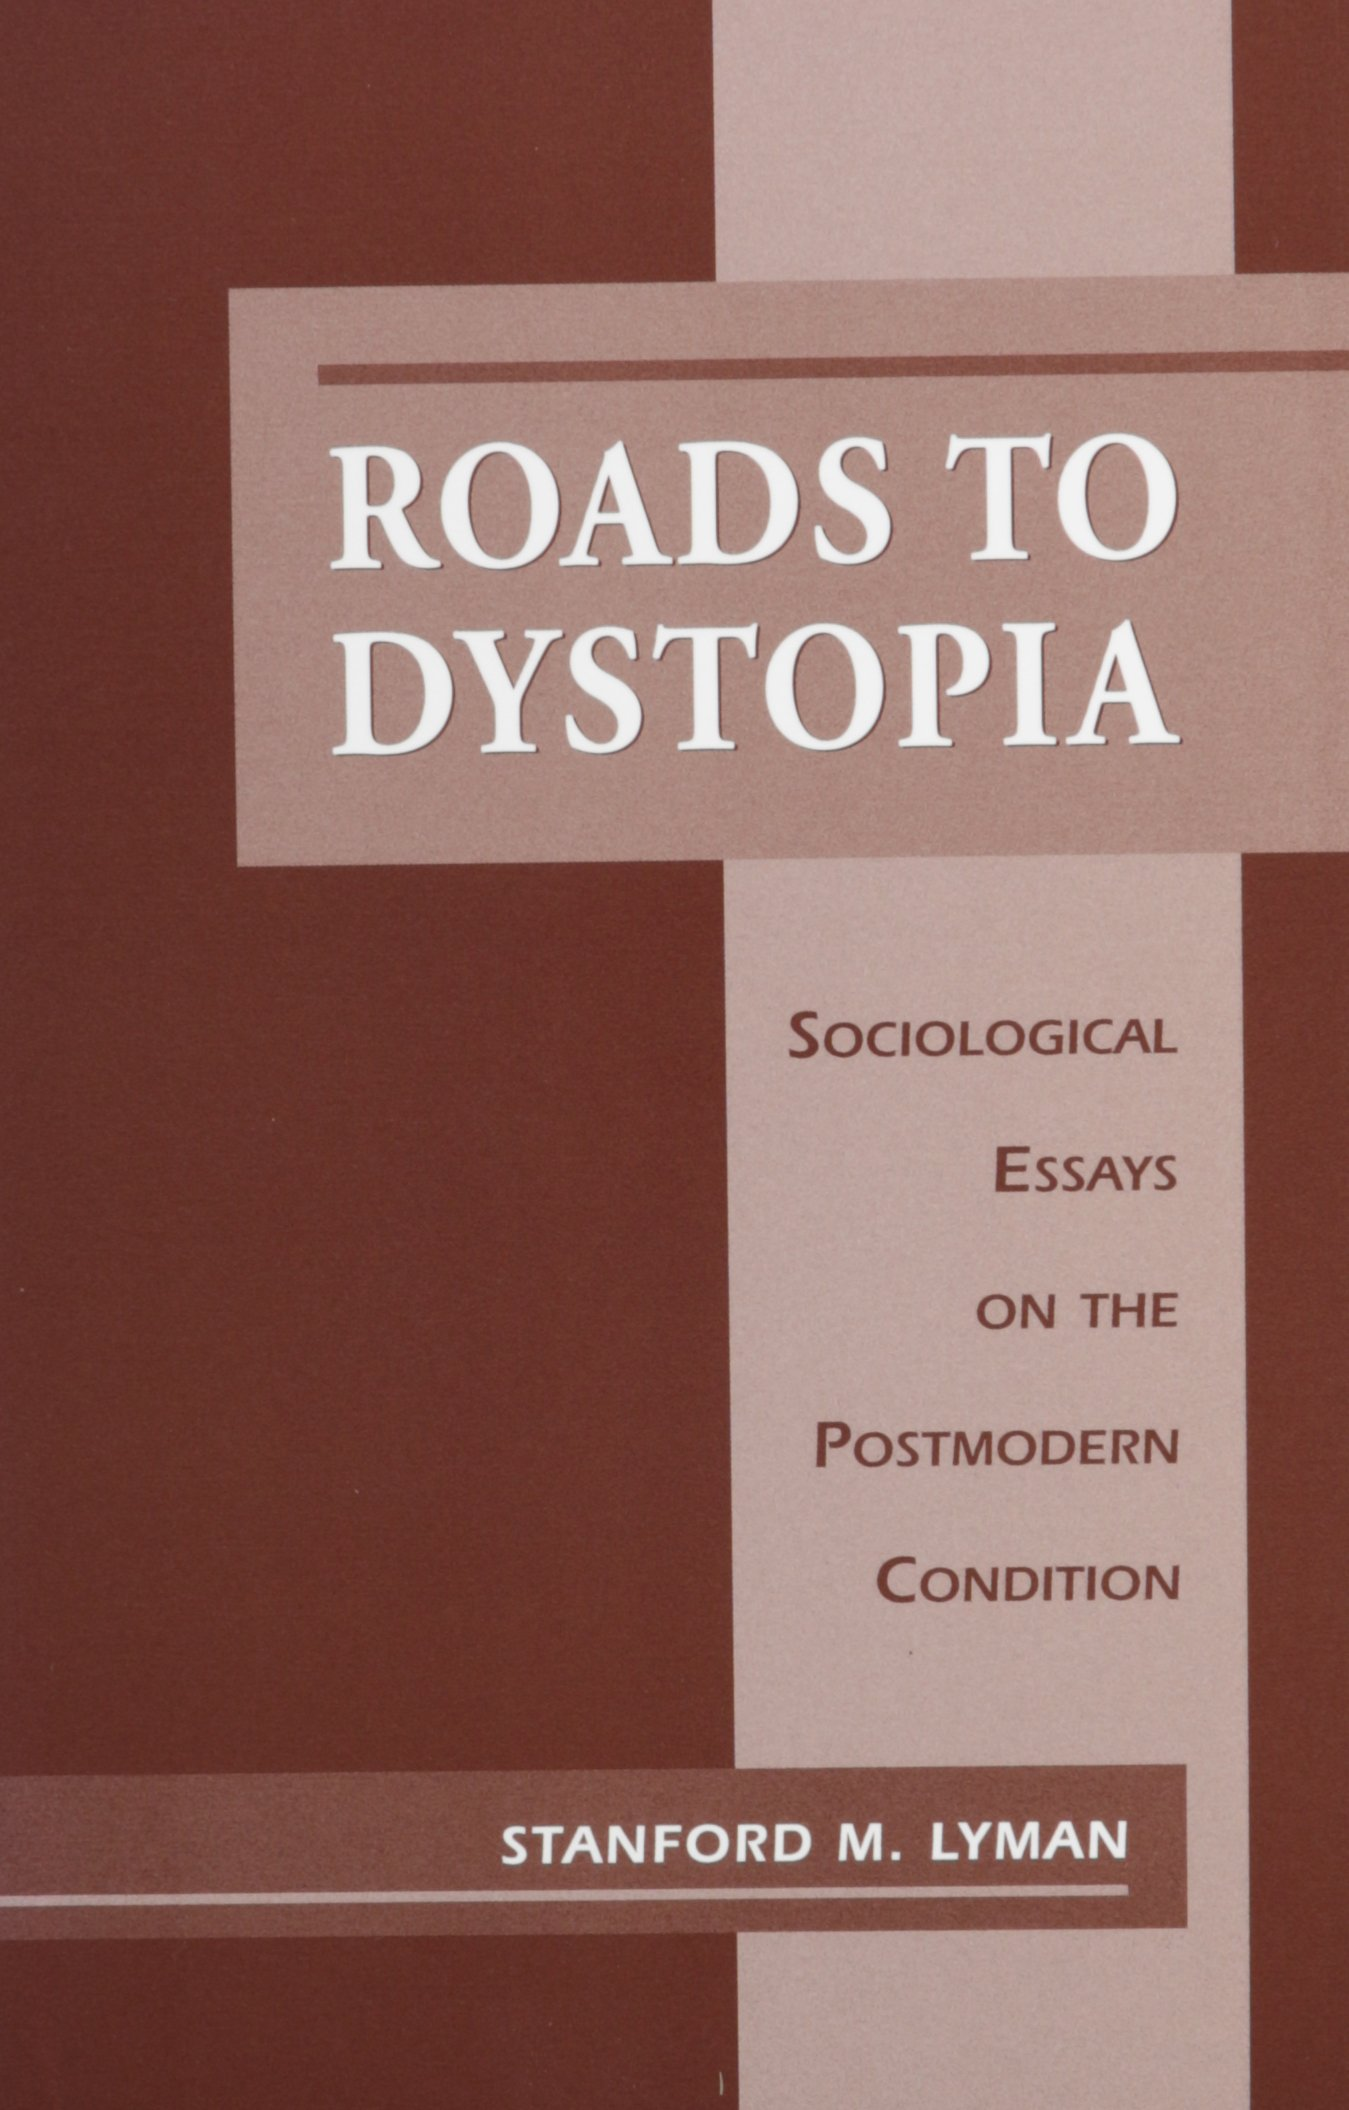 roads to dystopia sociological essays on the postmodern condition  roads to dystopia sociological essays on the postmodern condition studies in american sociology stanford lyman 9781557287113 com books